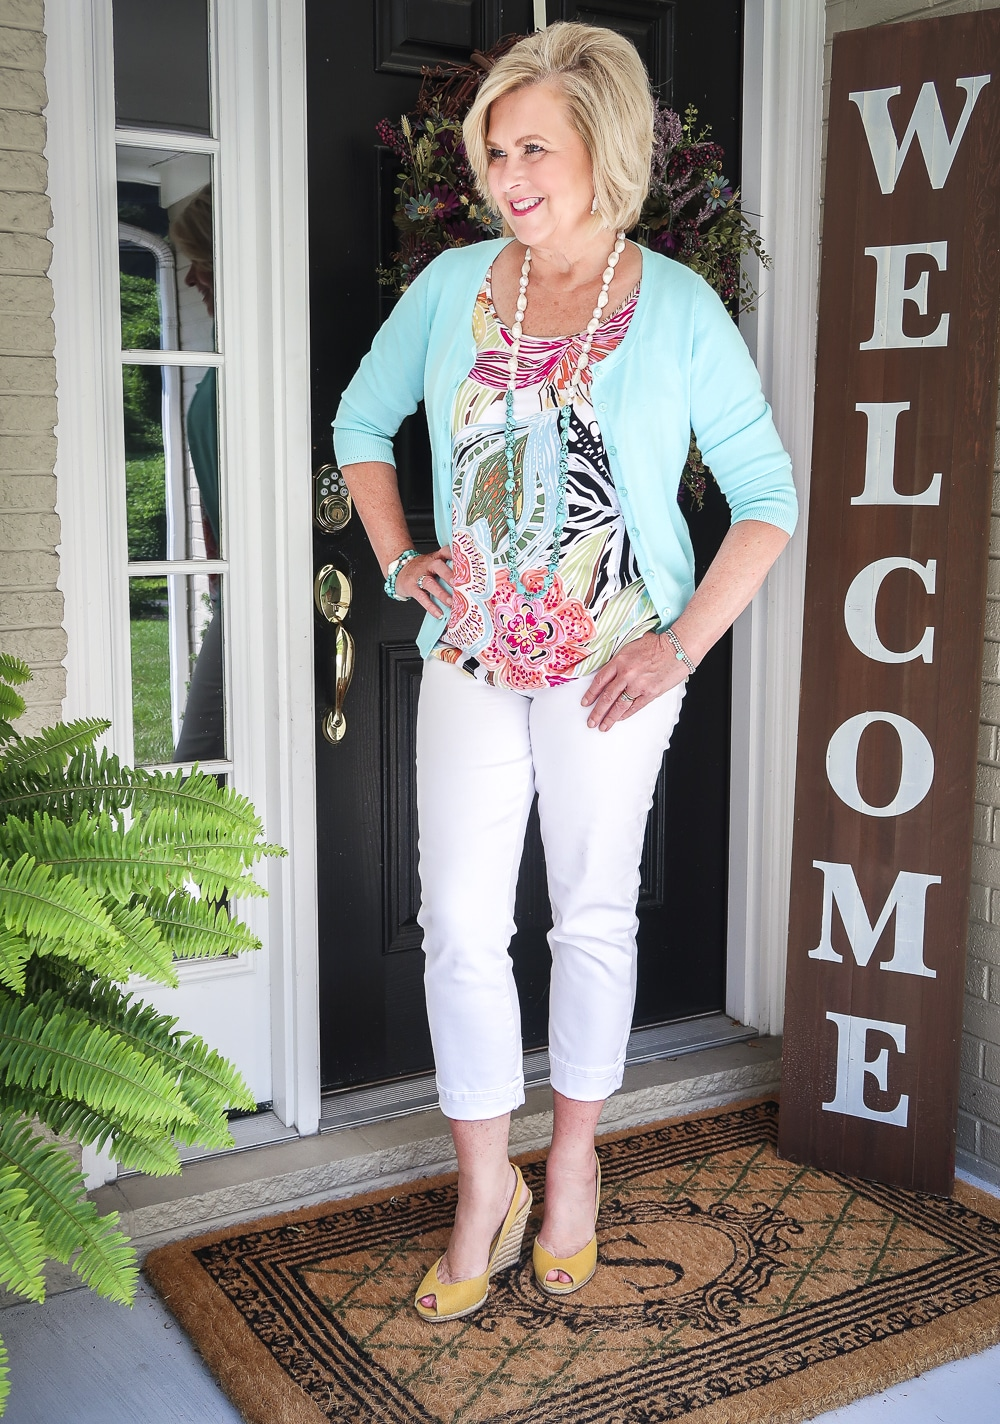 Fashion Blogger 50 Is Not Old is wearing an aqua cardigan, a bright tropical top, white ankle jeans, and yellow espadrilles